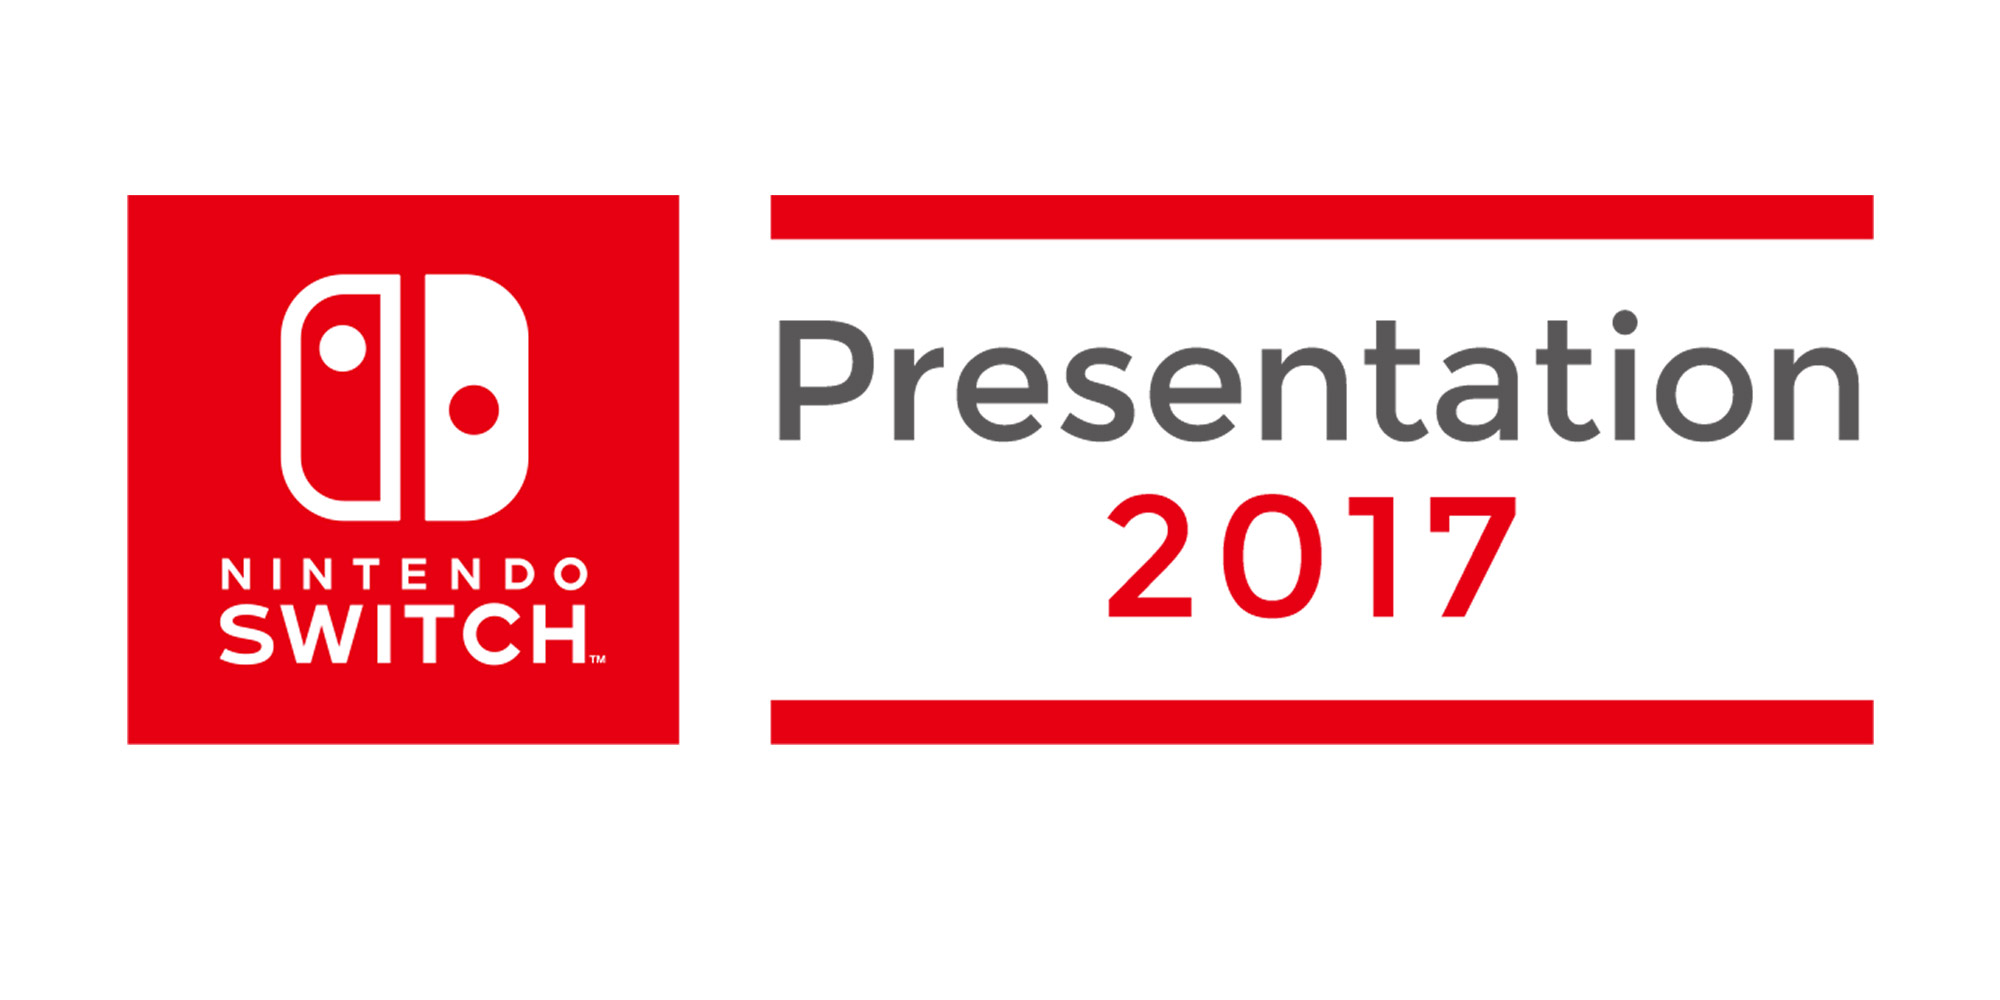 Watch Nintendo's Switch Presentation right here on SmashPad!